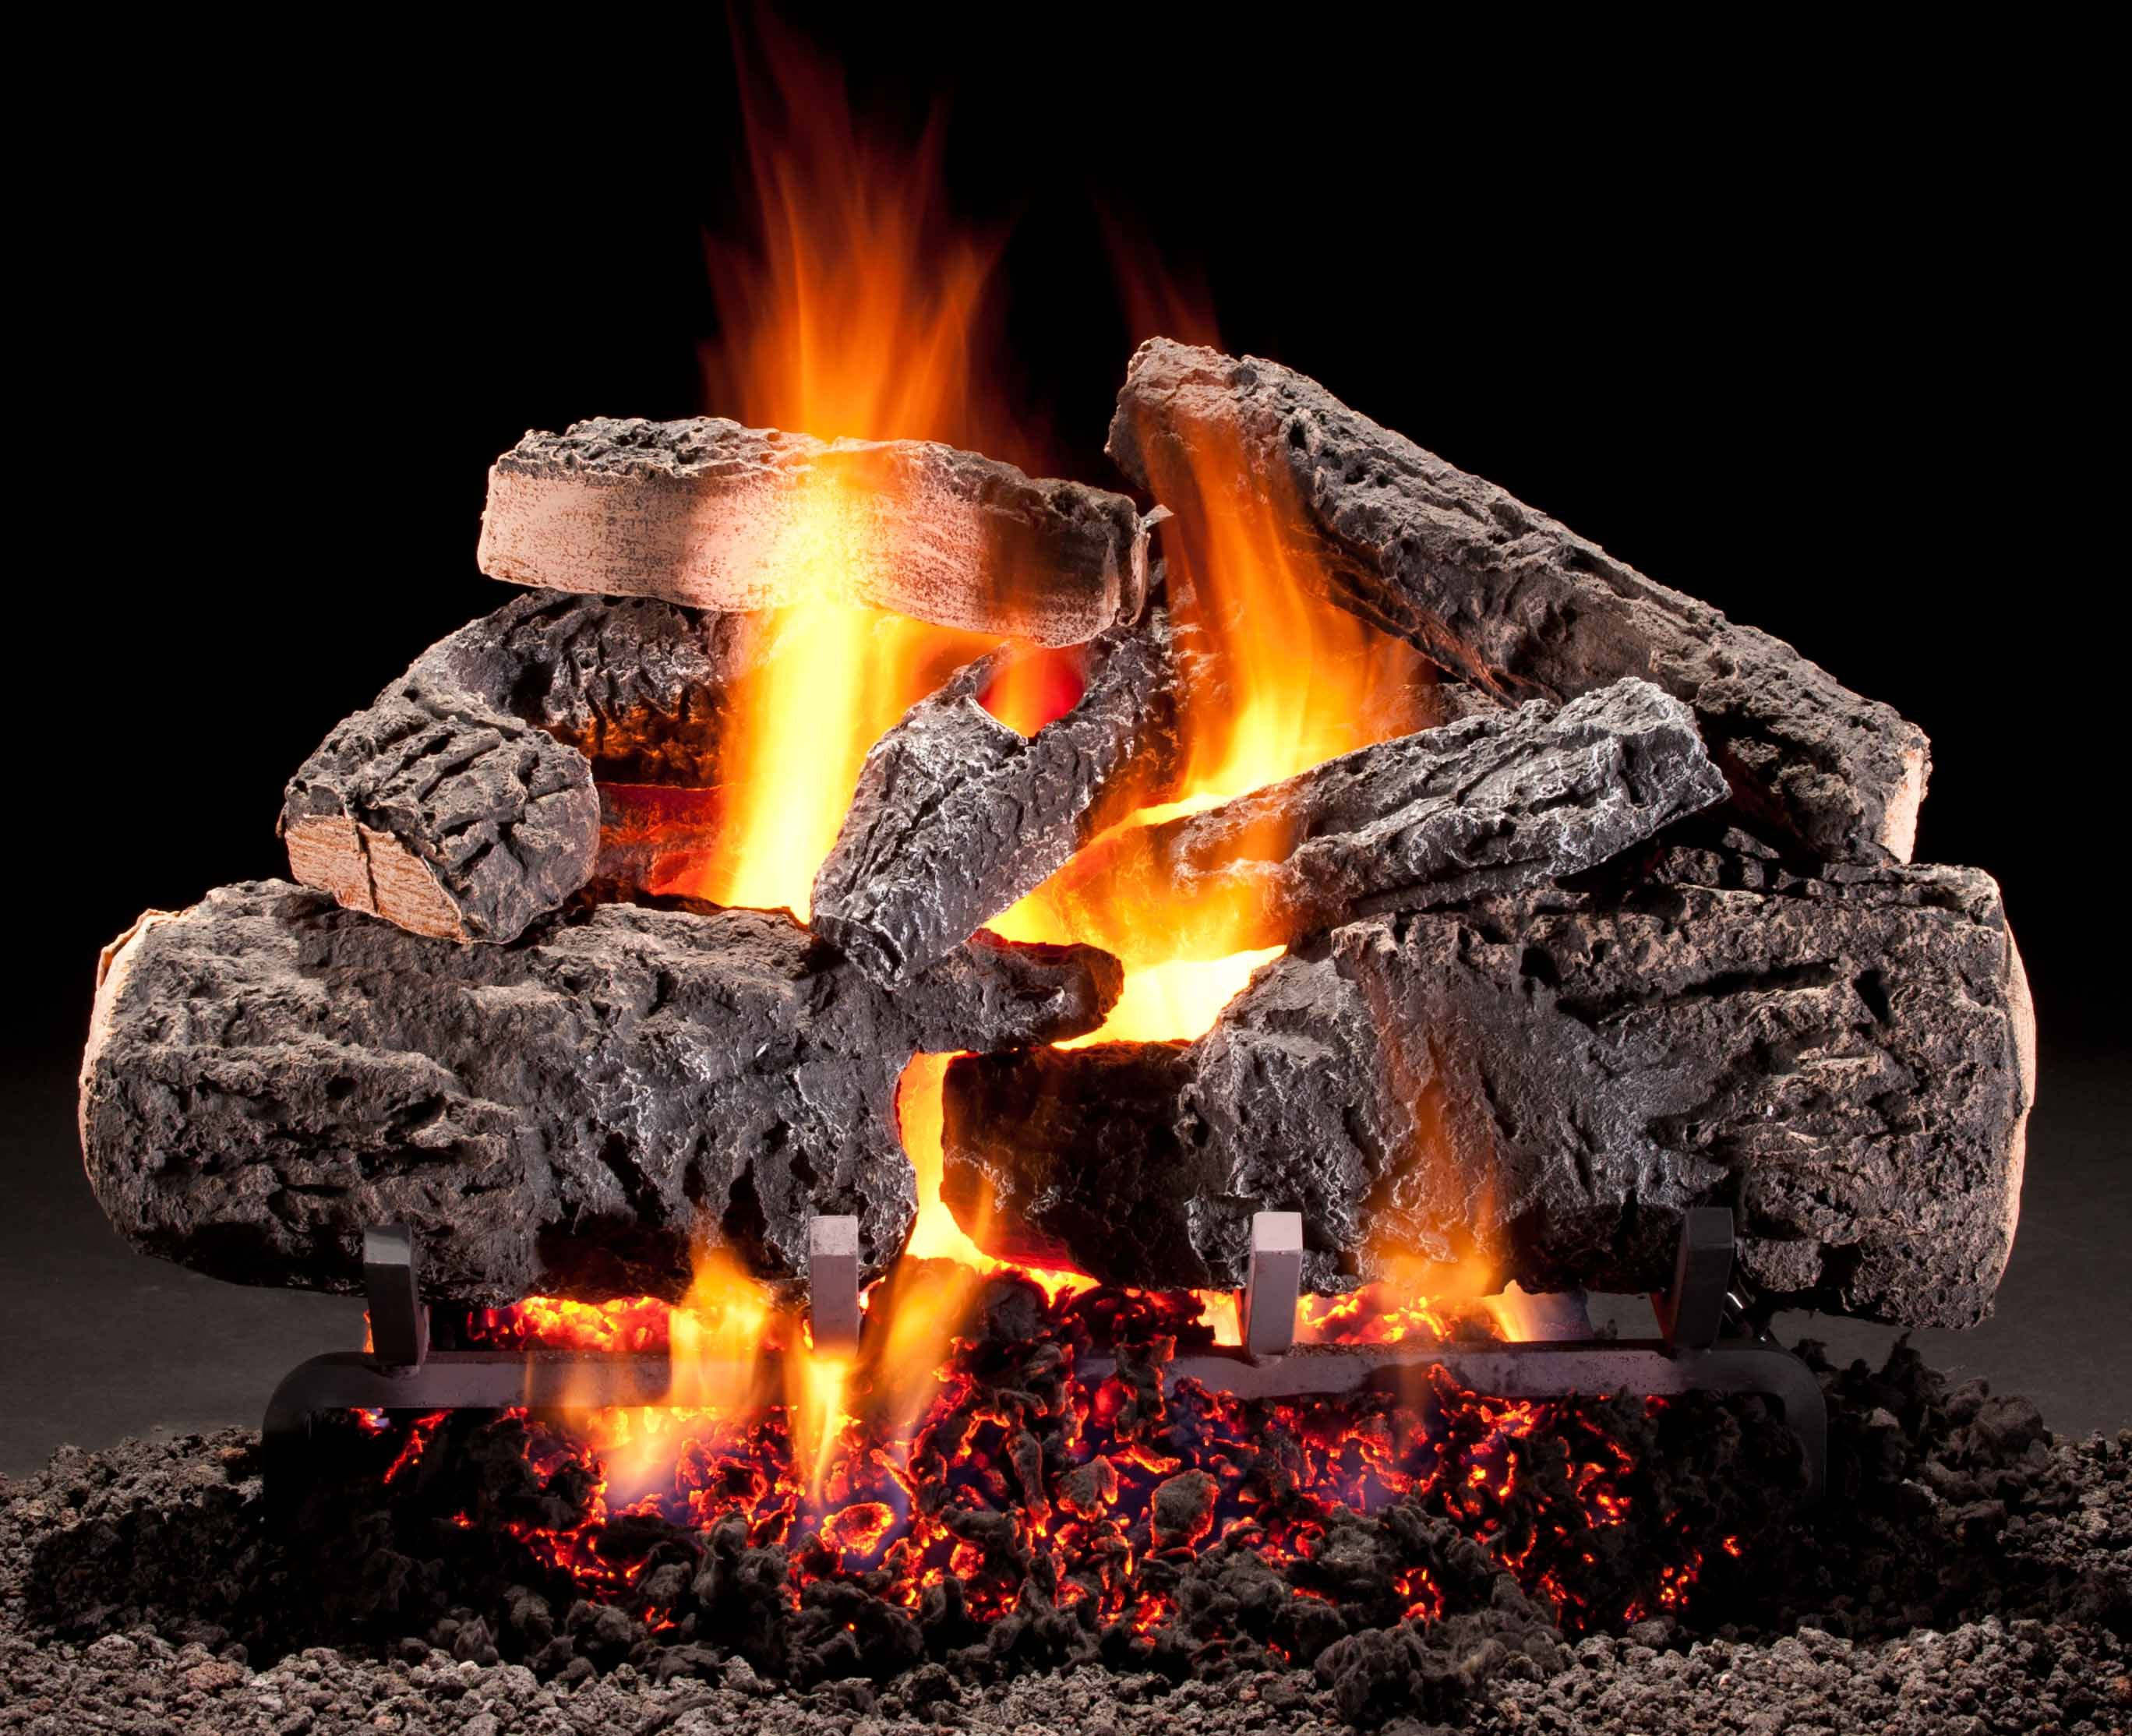 fresh pit unique seating homes amazon linear gas area outdoor fireplace on lanai logs ceramic fire better com and